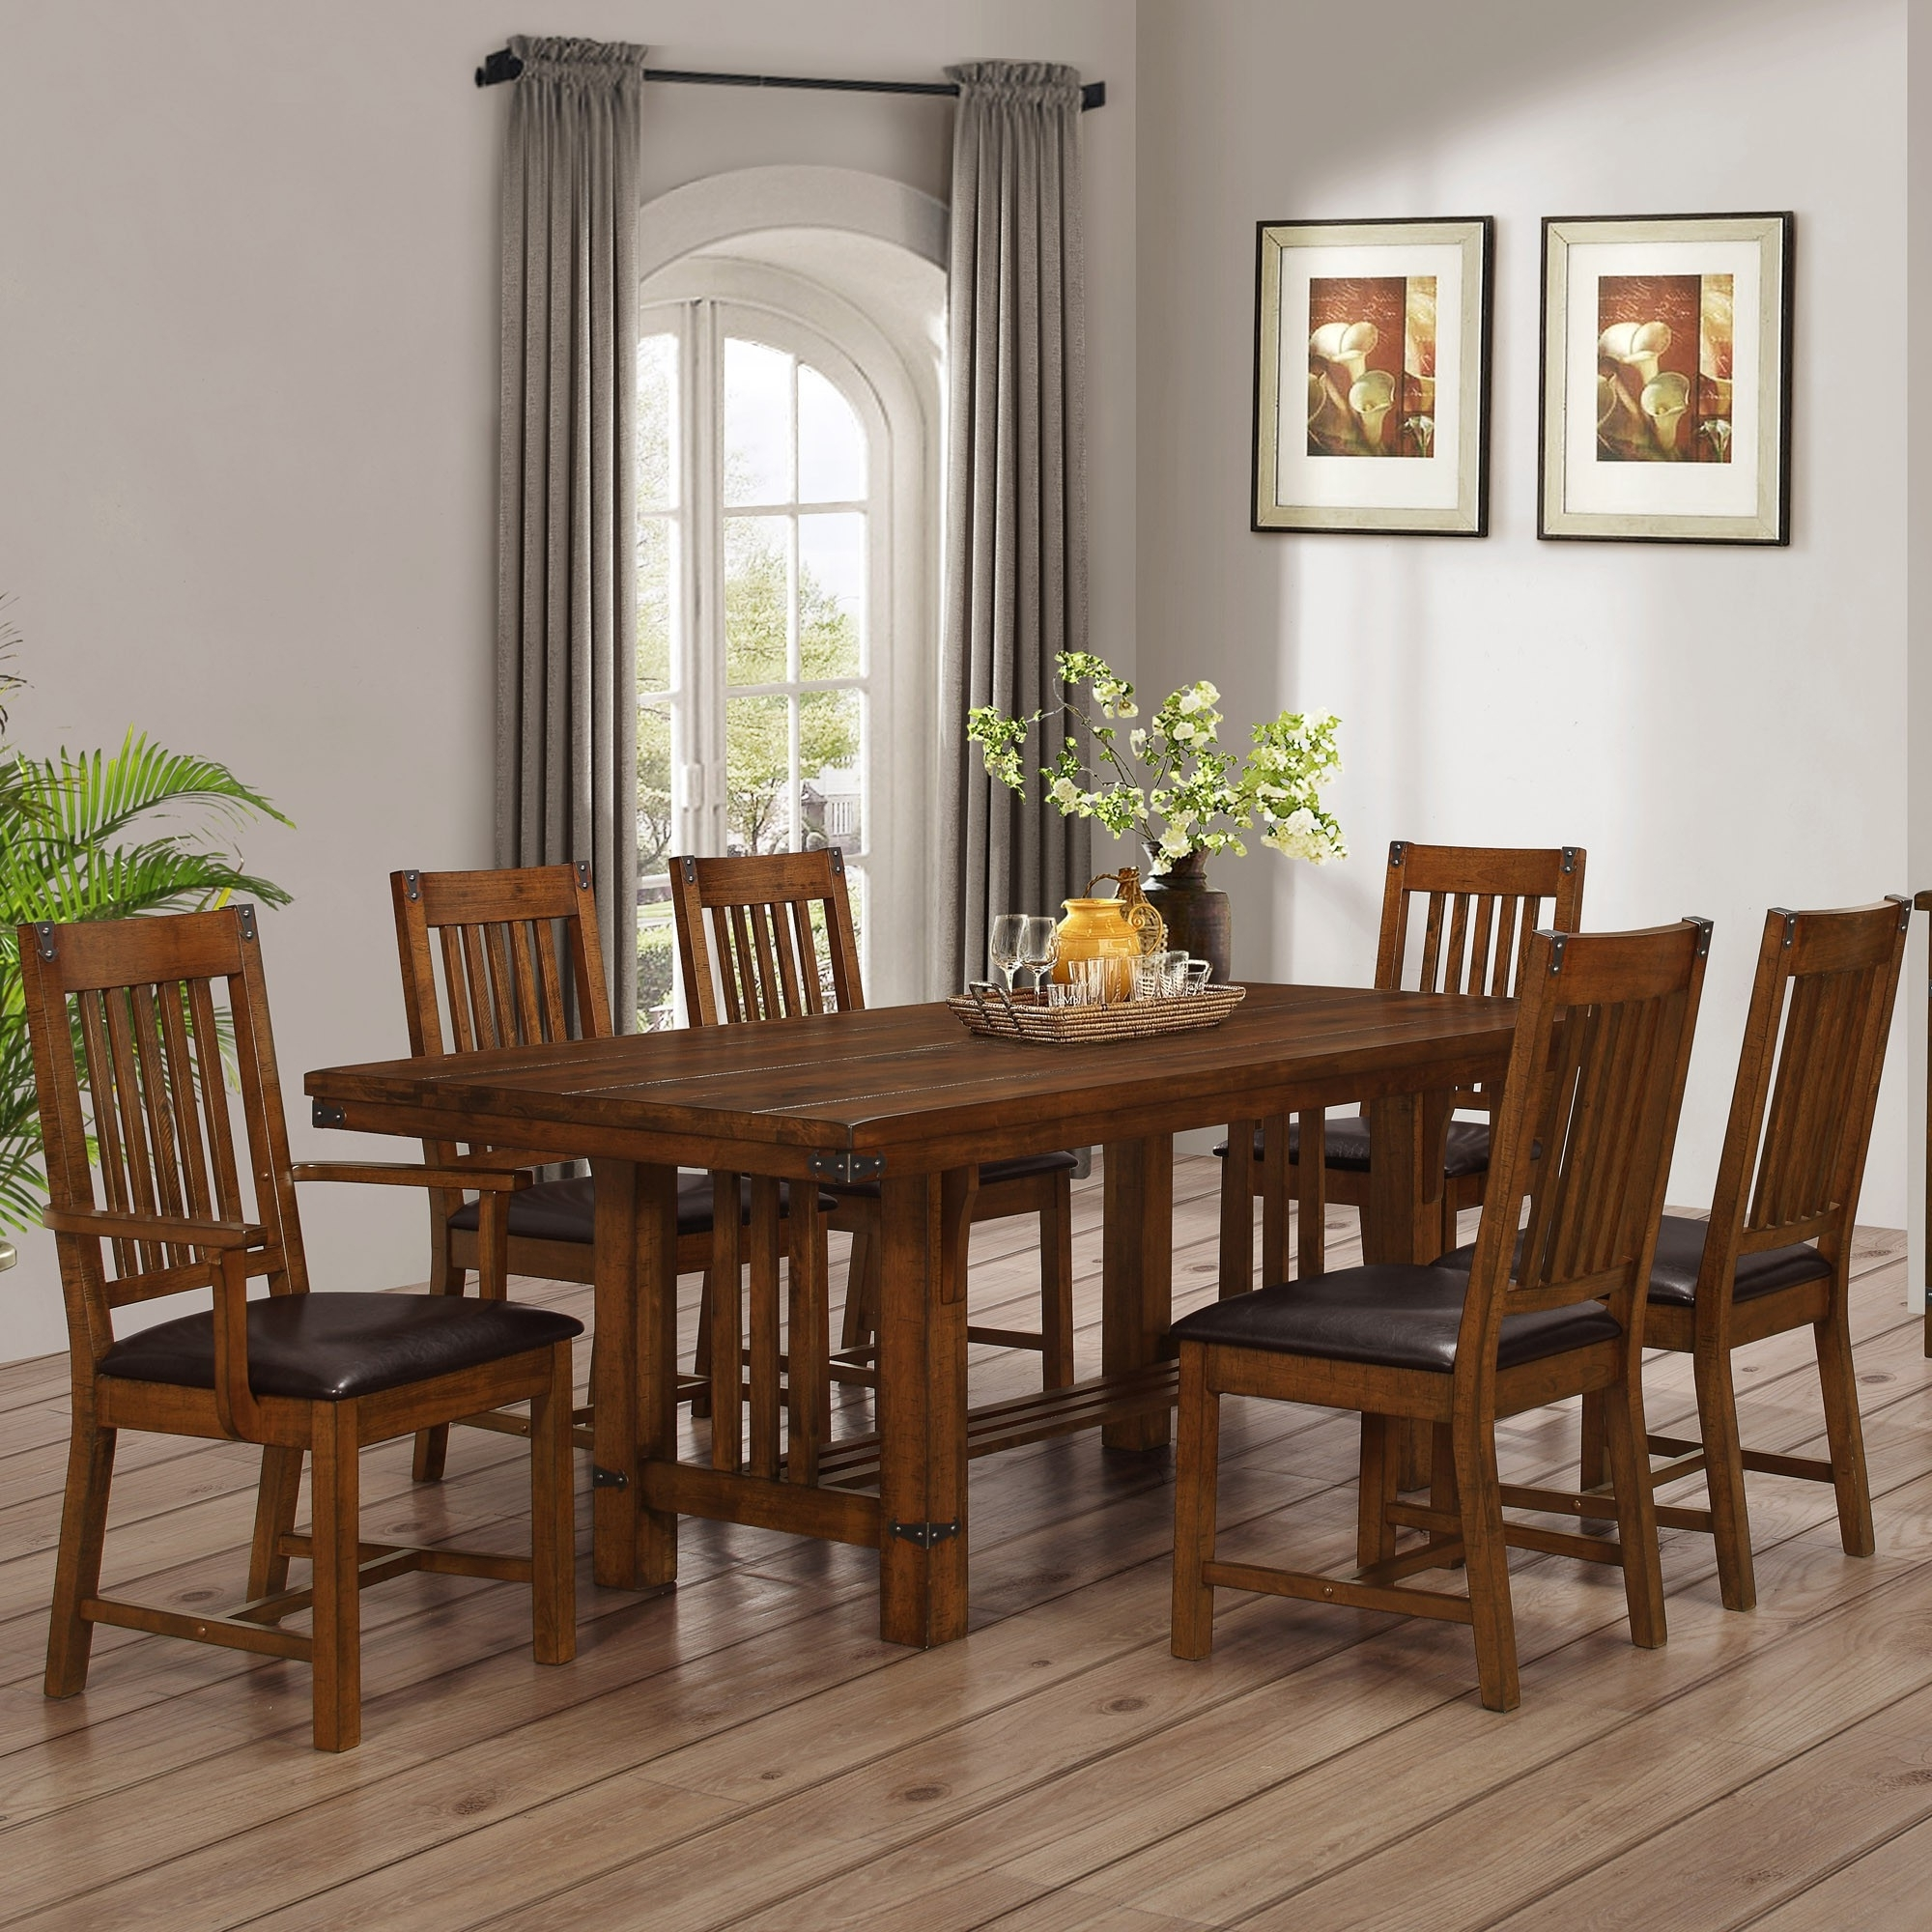 Buchanan Brown Mahogany Dining Room 7Pc Set For $949.94 – Furnitureusa Inside Most Popular Mahogany Dining Table Sets (Gallery 20 of 25)